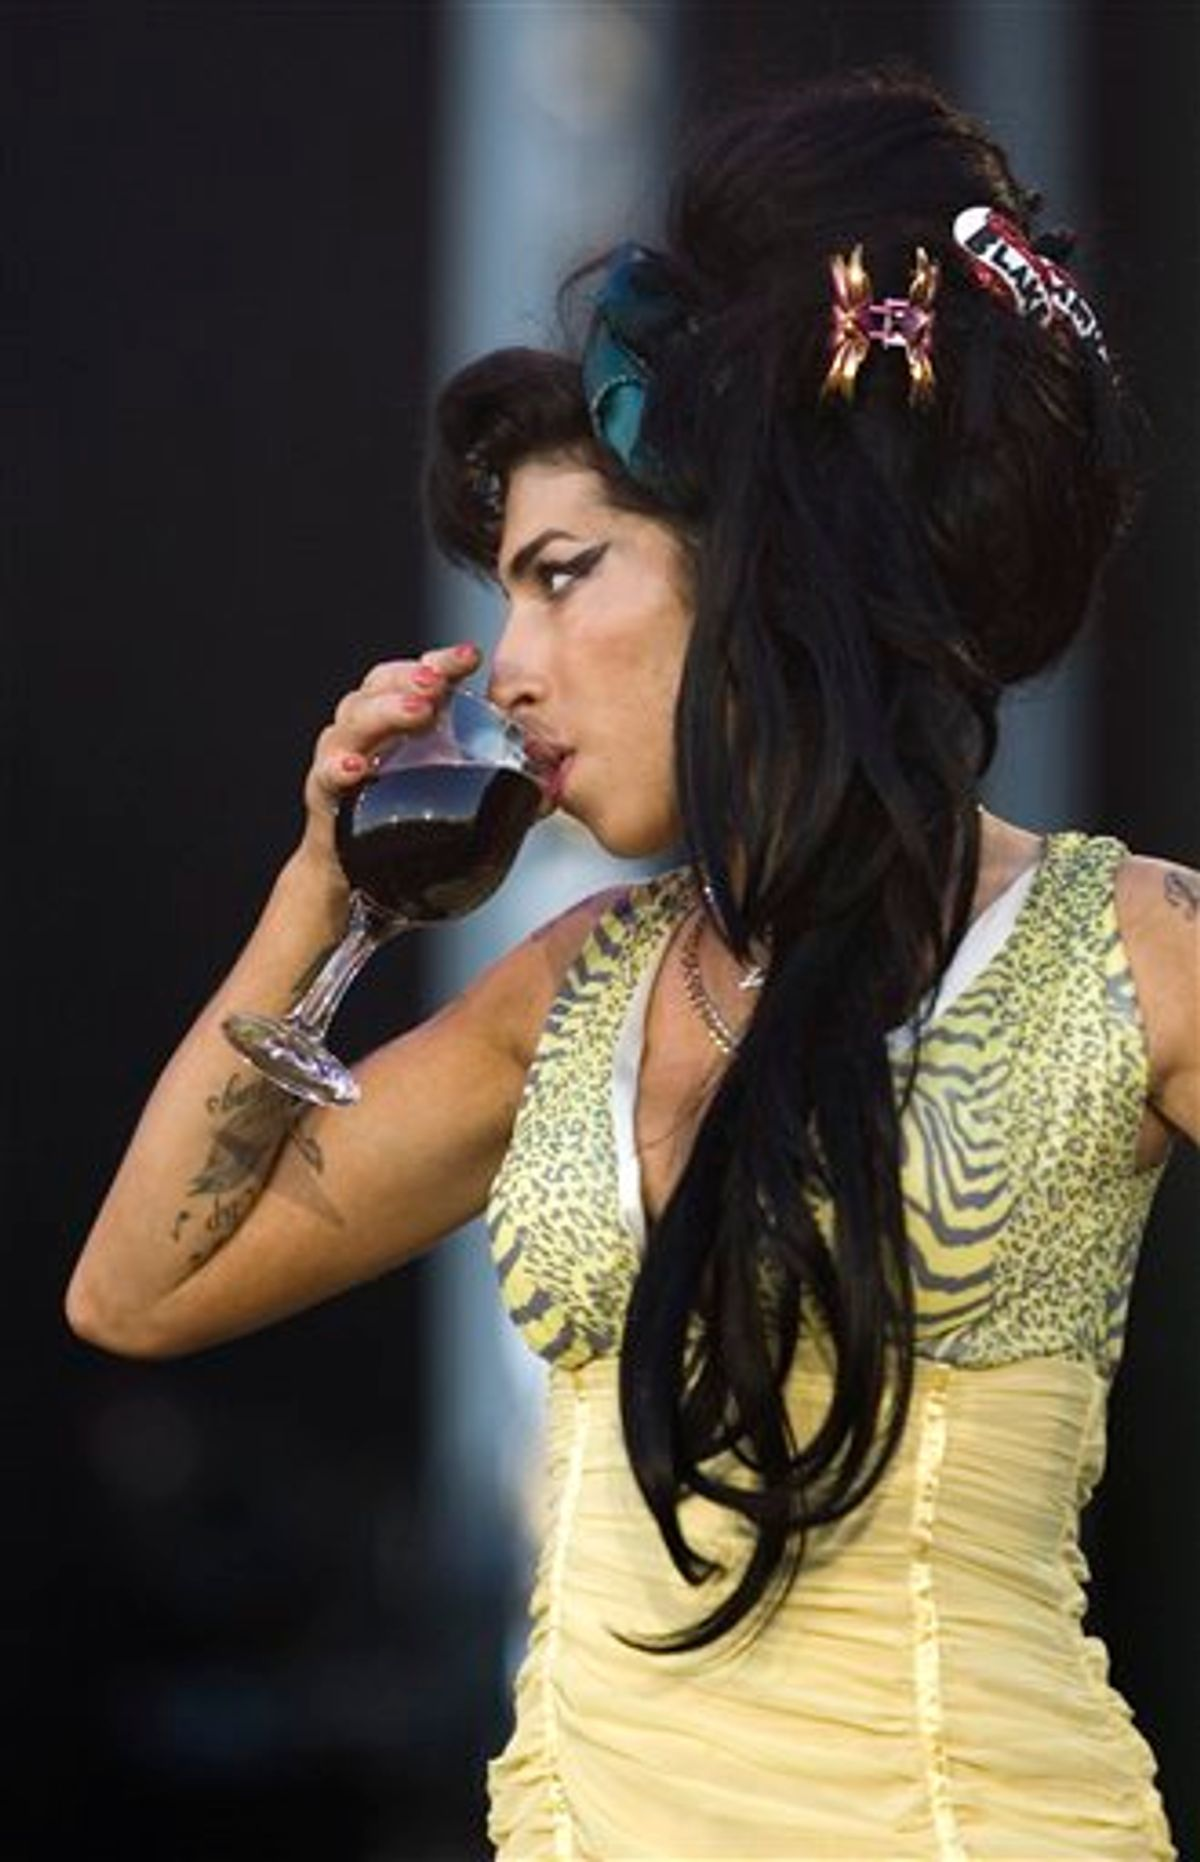 FILE - In this July 4, 2008 file photo, jazz soul singer Amy Winehouse, from England, performs during the Rock in Rio music festival in Arganda del Rey, on the outskirts of Madrid. Amy Winehouse was booed and jeered late Saturday, June 18, 2011 during a concert in Serbia's capital as she stumbled onto the stage, mumbled through her songs and wandered off. (AP Photo/Victor R. Caivano, File) EDITORIAL USE ONLY (AP)